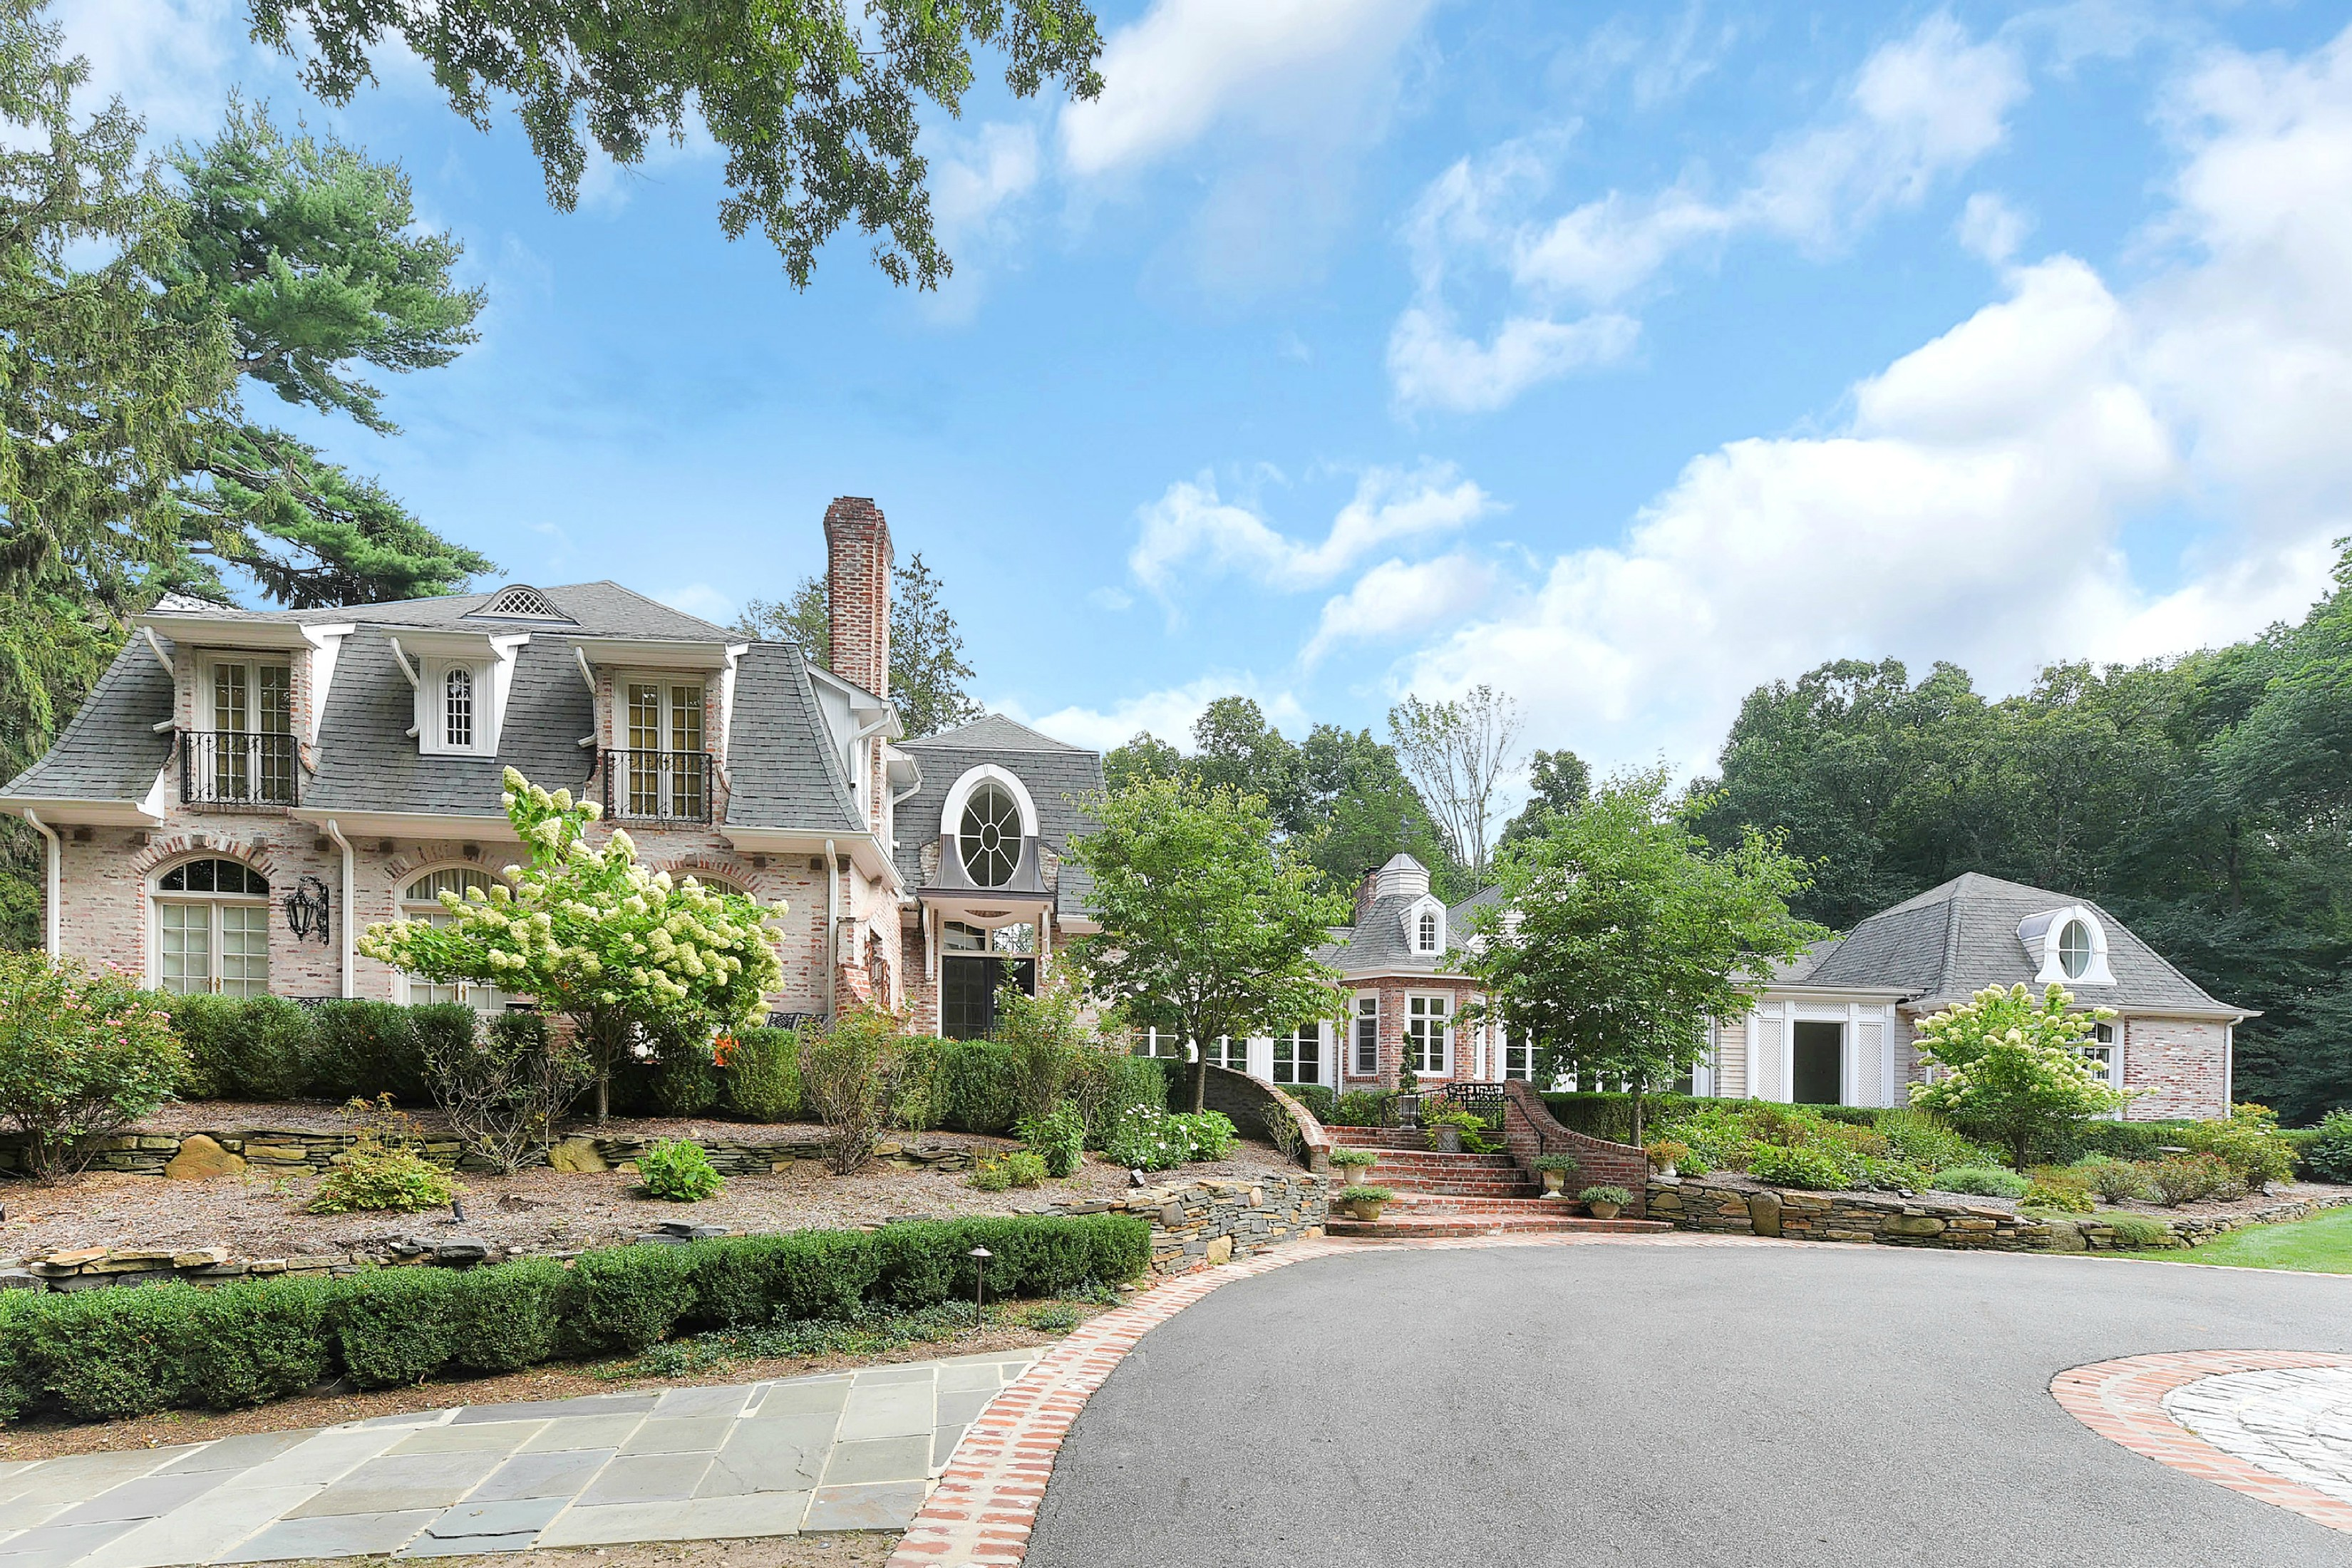 Single Family Home for Sale at European Chateau 239 Woodside Ave Franklin Lakes, 07417 United States